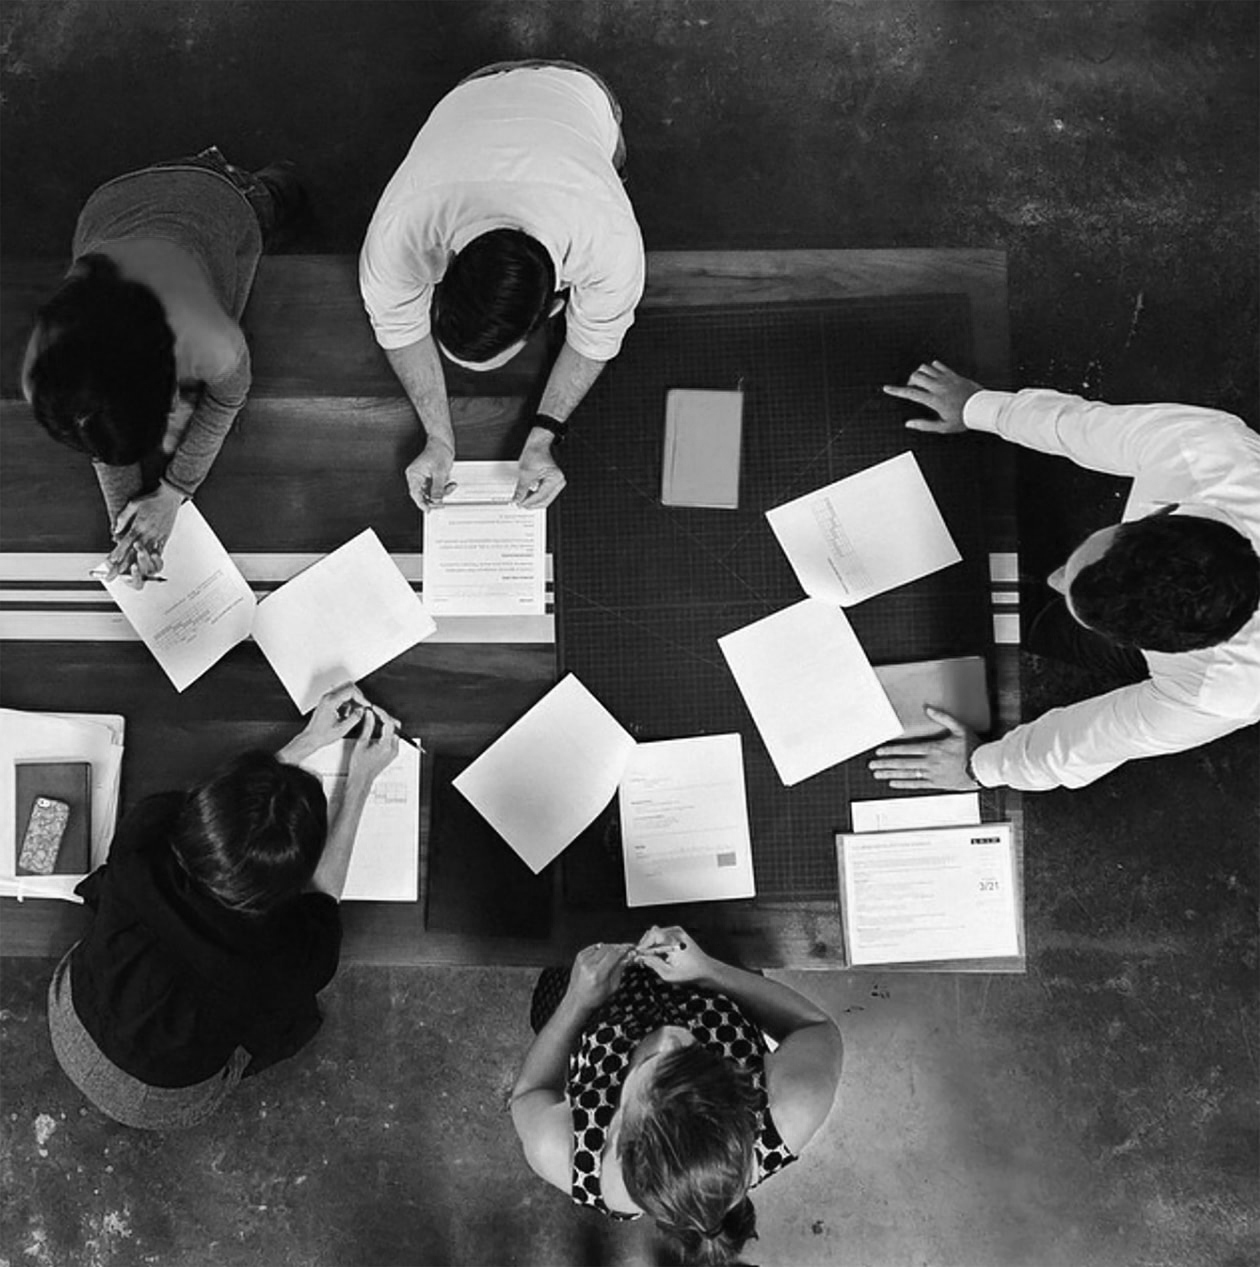 Black and white overhead shot of people working around a table.